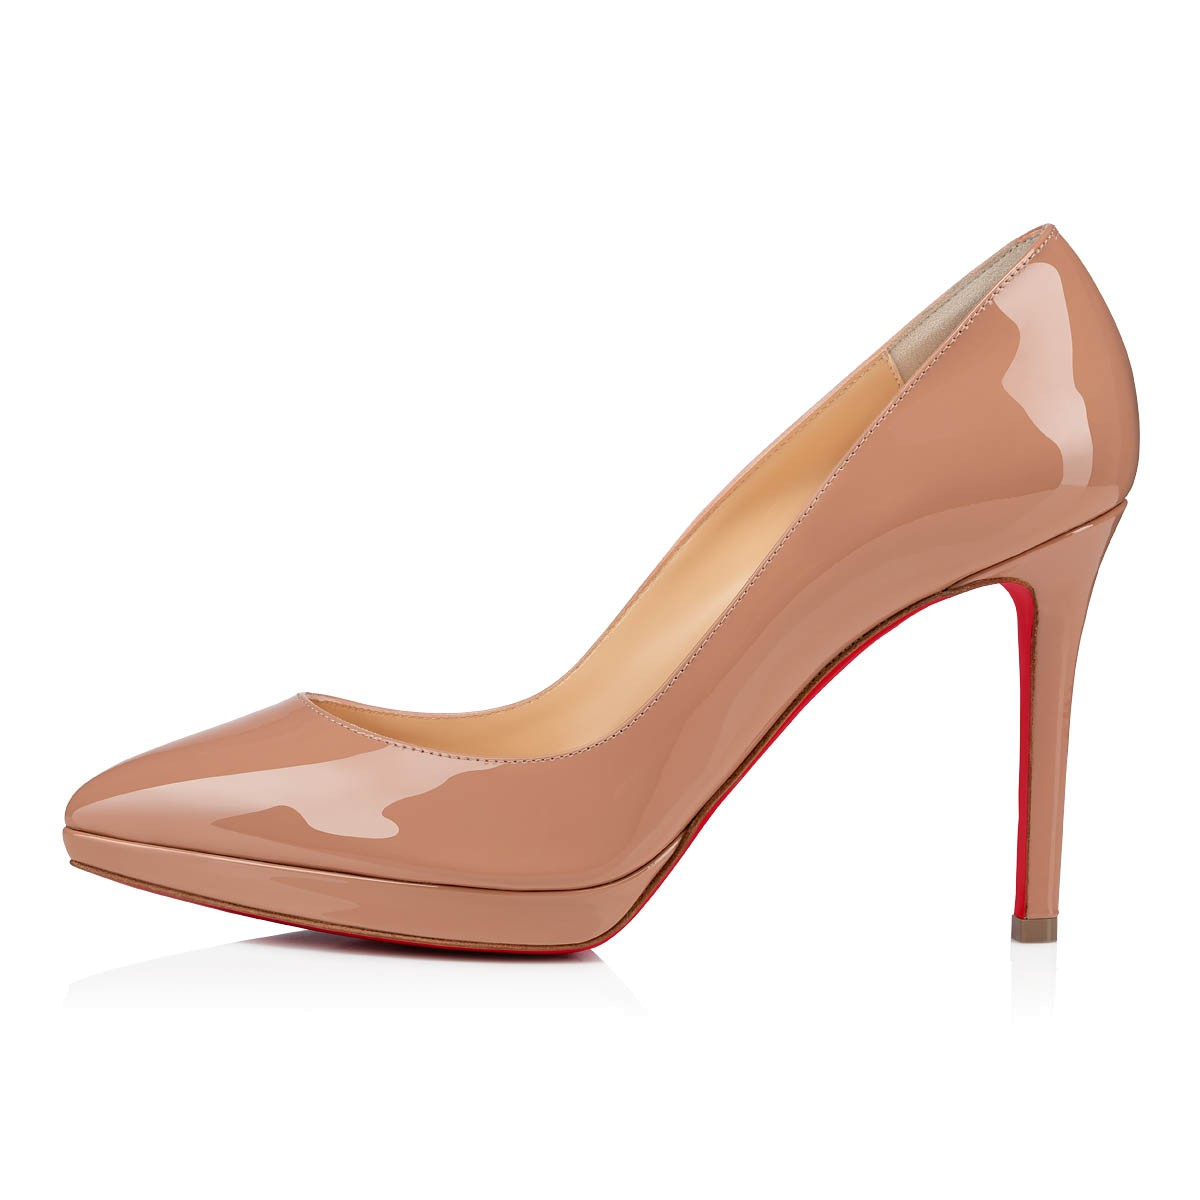 KATE 55 NUDE Leather - Women Shoes - Christian Louboutin